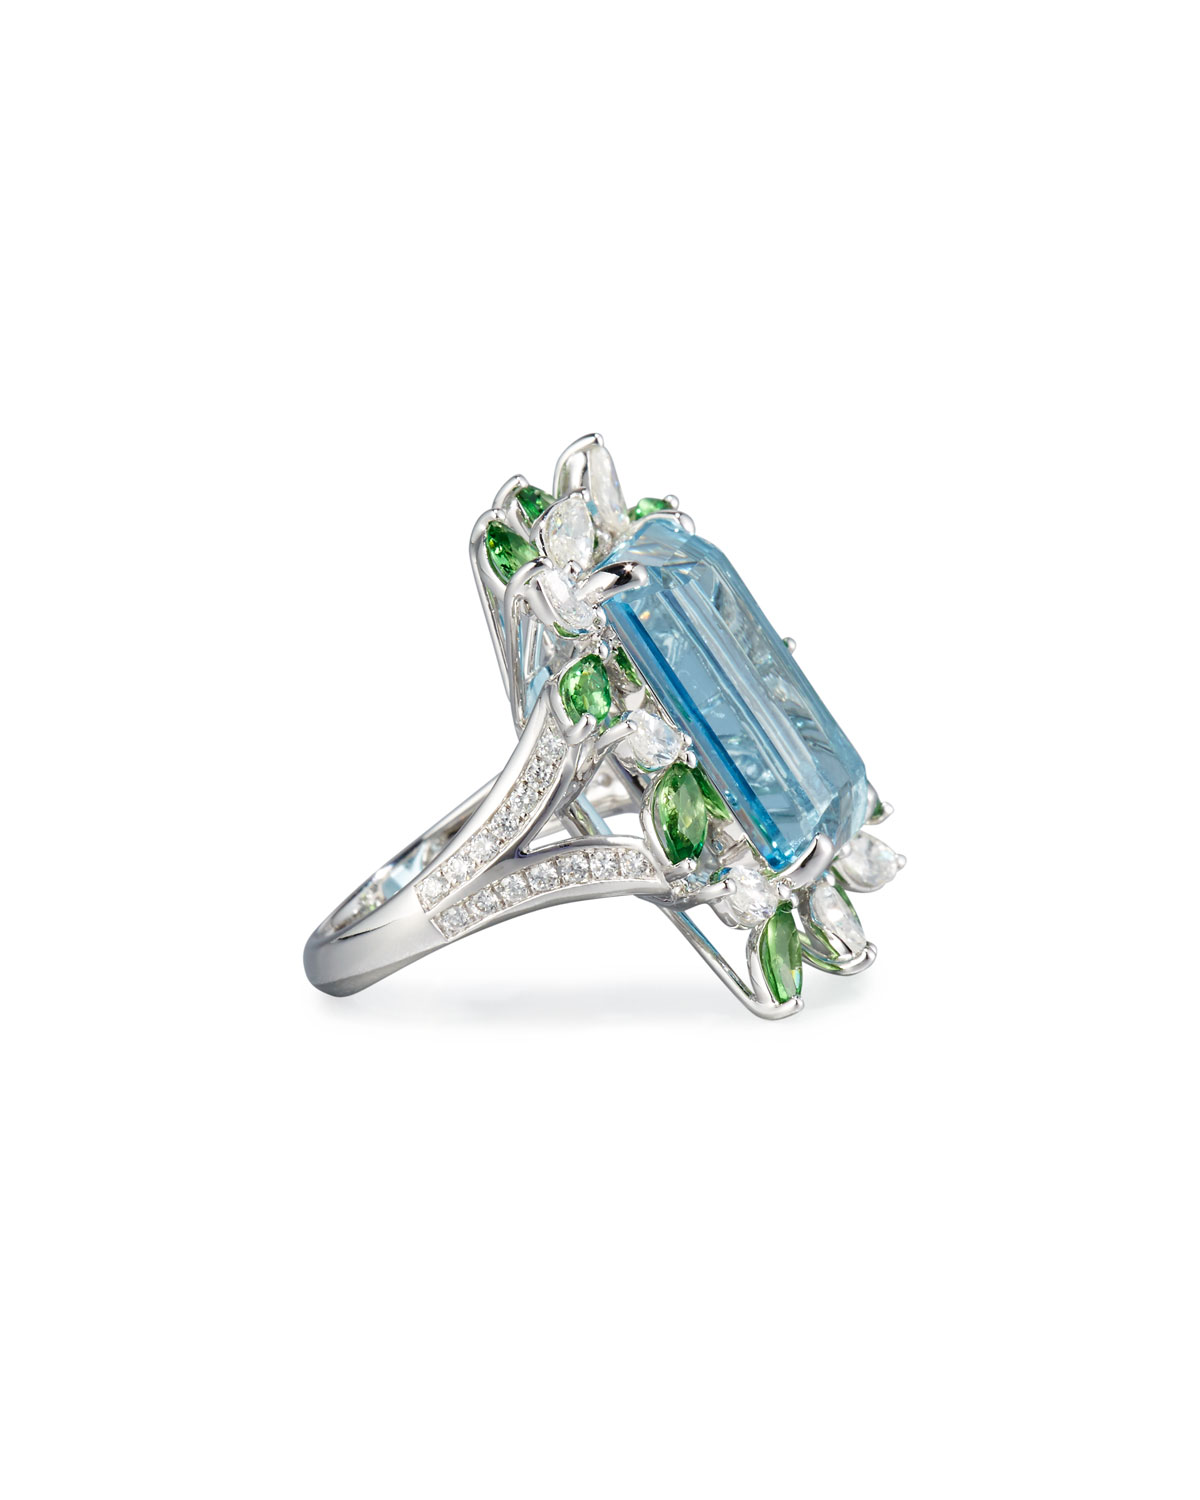 Alexander Laut Emerald-Cut Aquamarine Ring with Tsavorites & Diamonds, Size 7.25